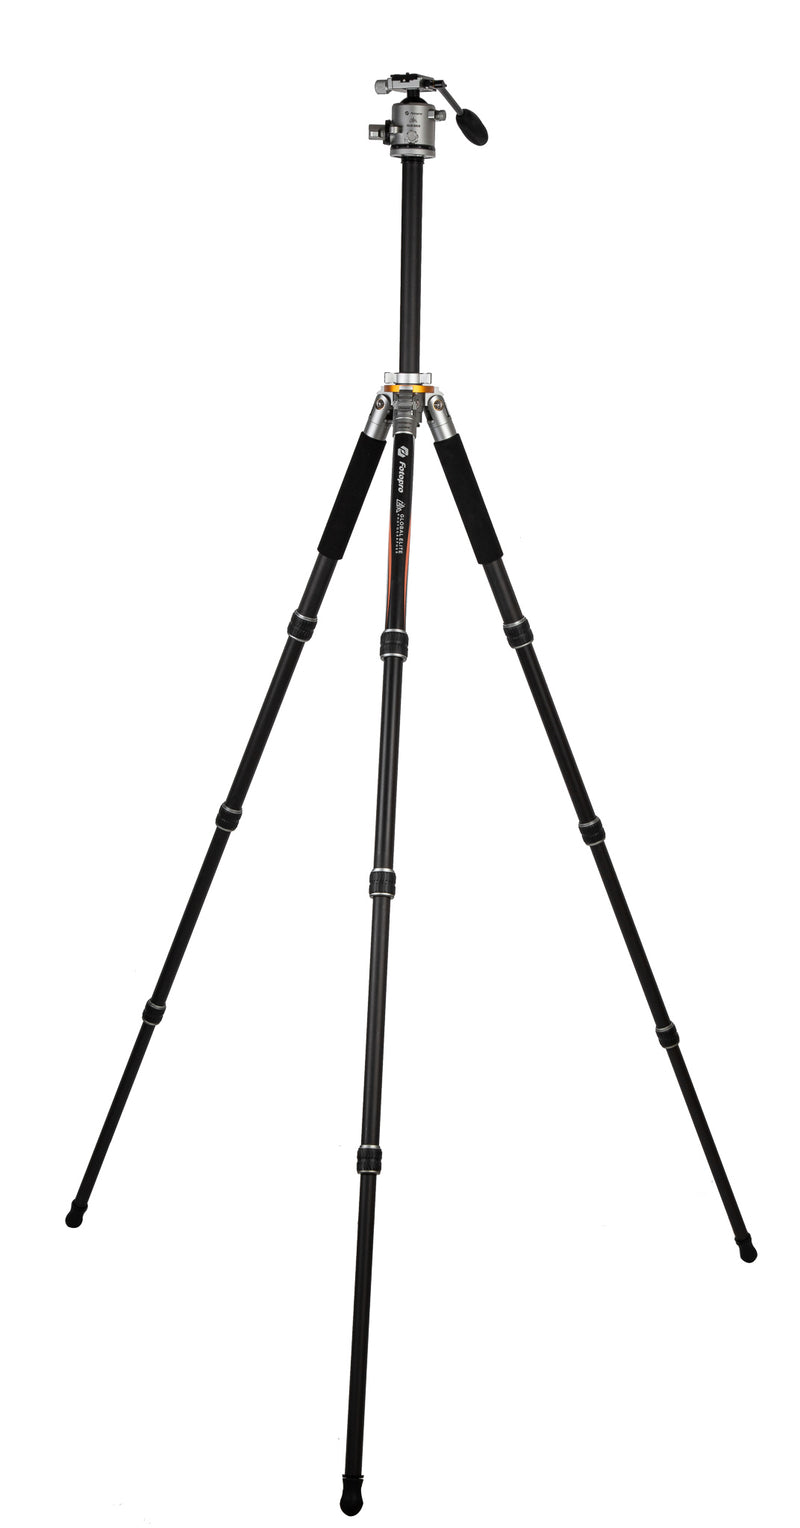 Fotopro Global Elite Photographer Series Carbon Fiber Tripod TL-64C with LG-7R Ball Head